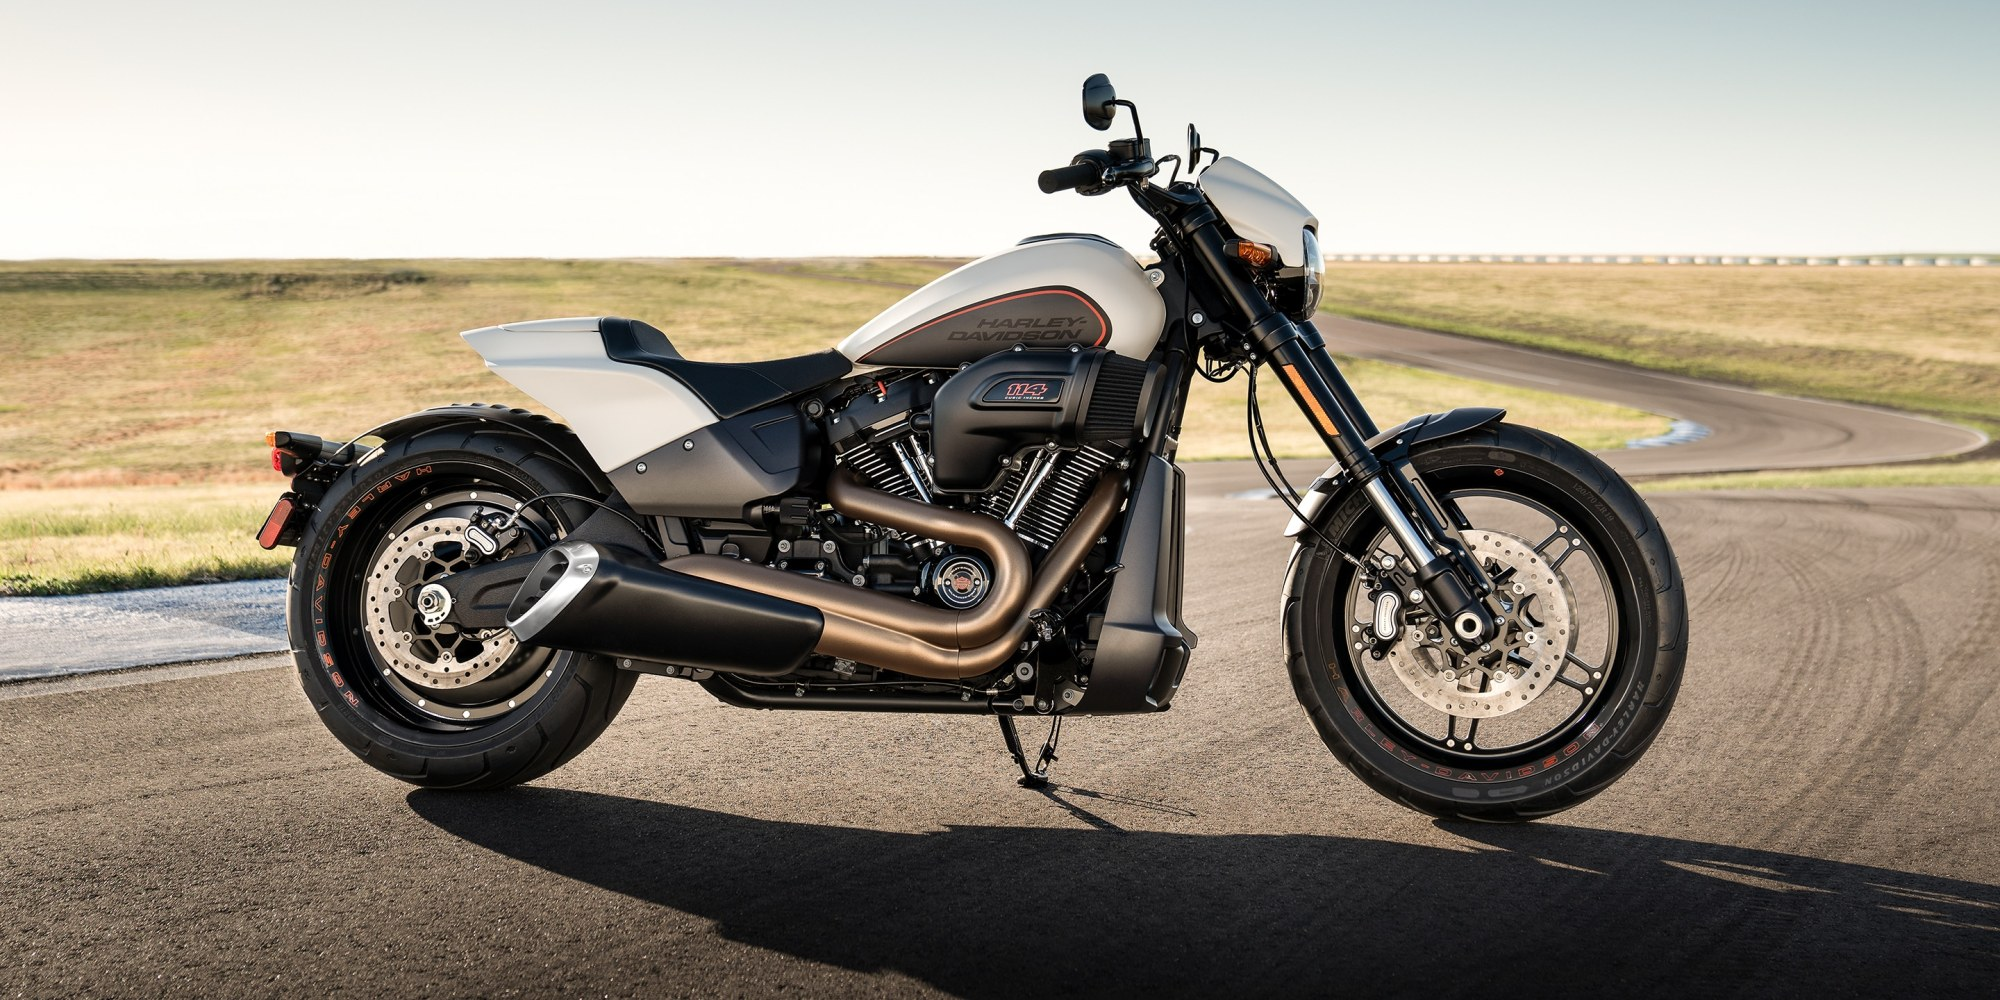 hight resolution of 2019 fxdr114 motorcycle parked on street